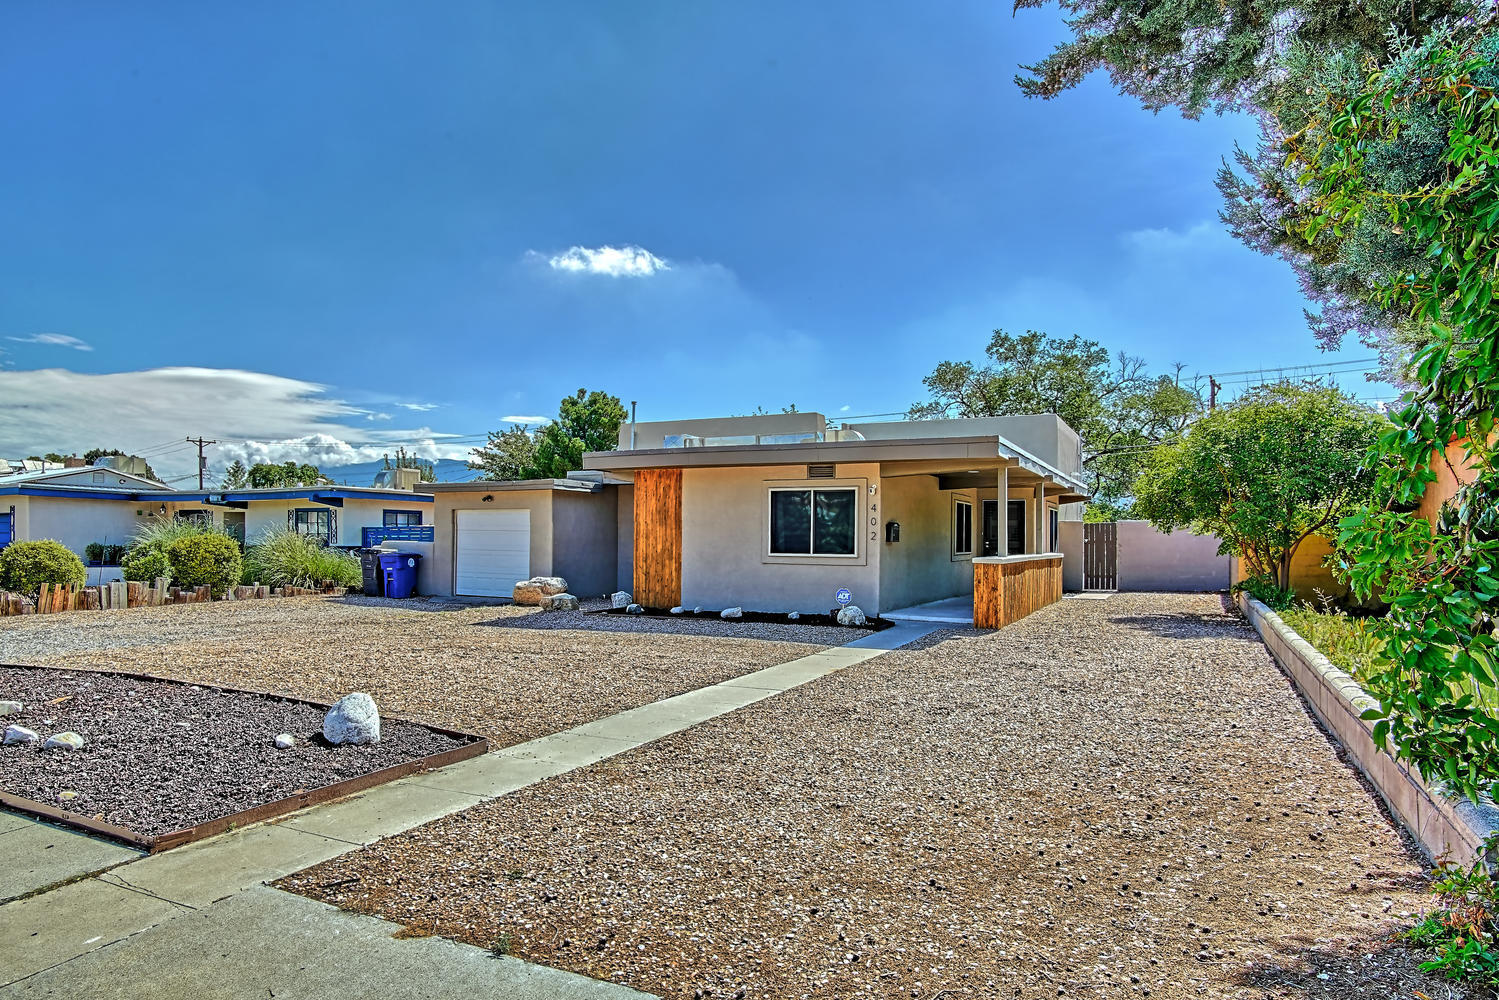 Absolutely Phenomenal complete NEW Build/Remodel in 2019!  UNM/cusp of Nob Hill Location!  OPEN, CONTEMPORARY and BRIGHT! Stunning Hardwood floors! Spacious LR/DR combo flows to Gourmet Kitchen w/Abundant cabinetry*Granite counters*SS GE-4 burner gas+griddle Range*Fab Decorator range hood*Large W-in pantry! Beautiful lighting throughout including decorator ceiling fans! Luxurious Owner's suite boasts hardwood floors*A.M. sun* W-in closet w built in's* Relax in your Elegant soaking tub or custom shower! Modern double vanity w floating cabinets! 2 spacious BRs share a Gorgeous bath! Back yard access alley for RV or  Boat parking!  22k+ in recent amenities! Designer Energy efficient Steel Screens offer Privacy+ Security!  Xeriscaped yard! Mountain Views! Highly desirable and  convenient area